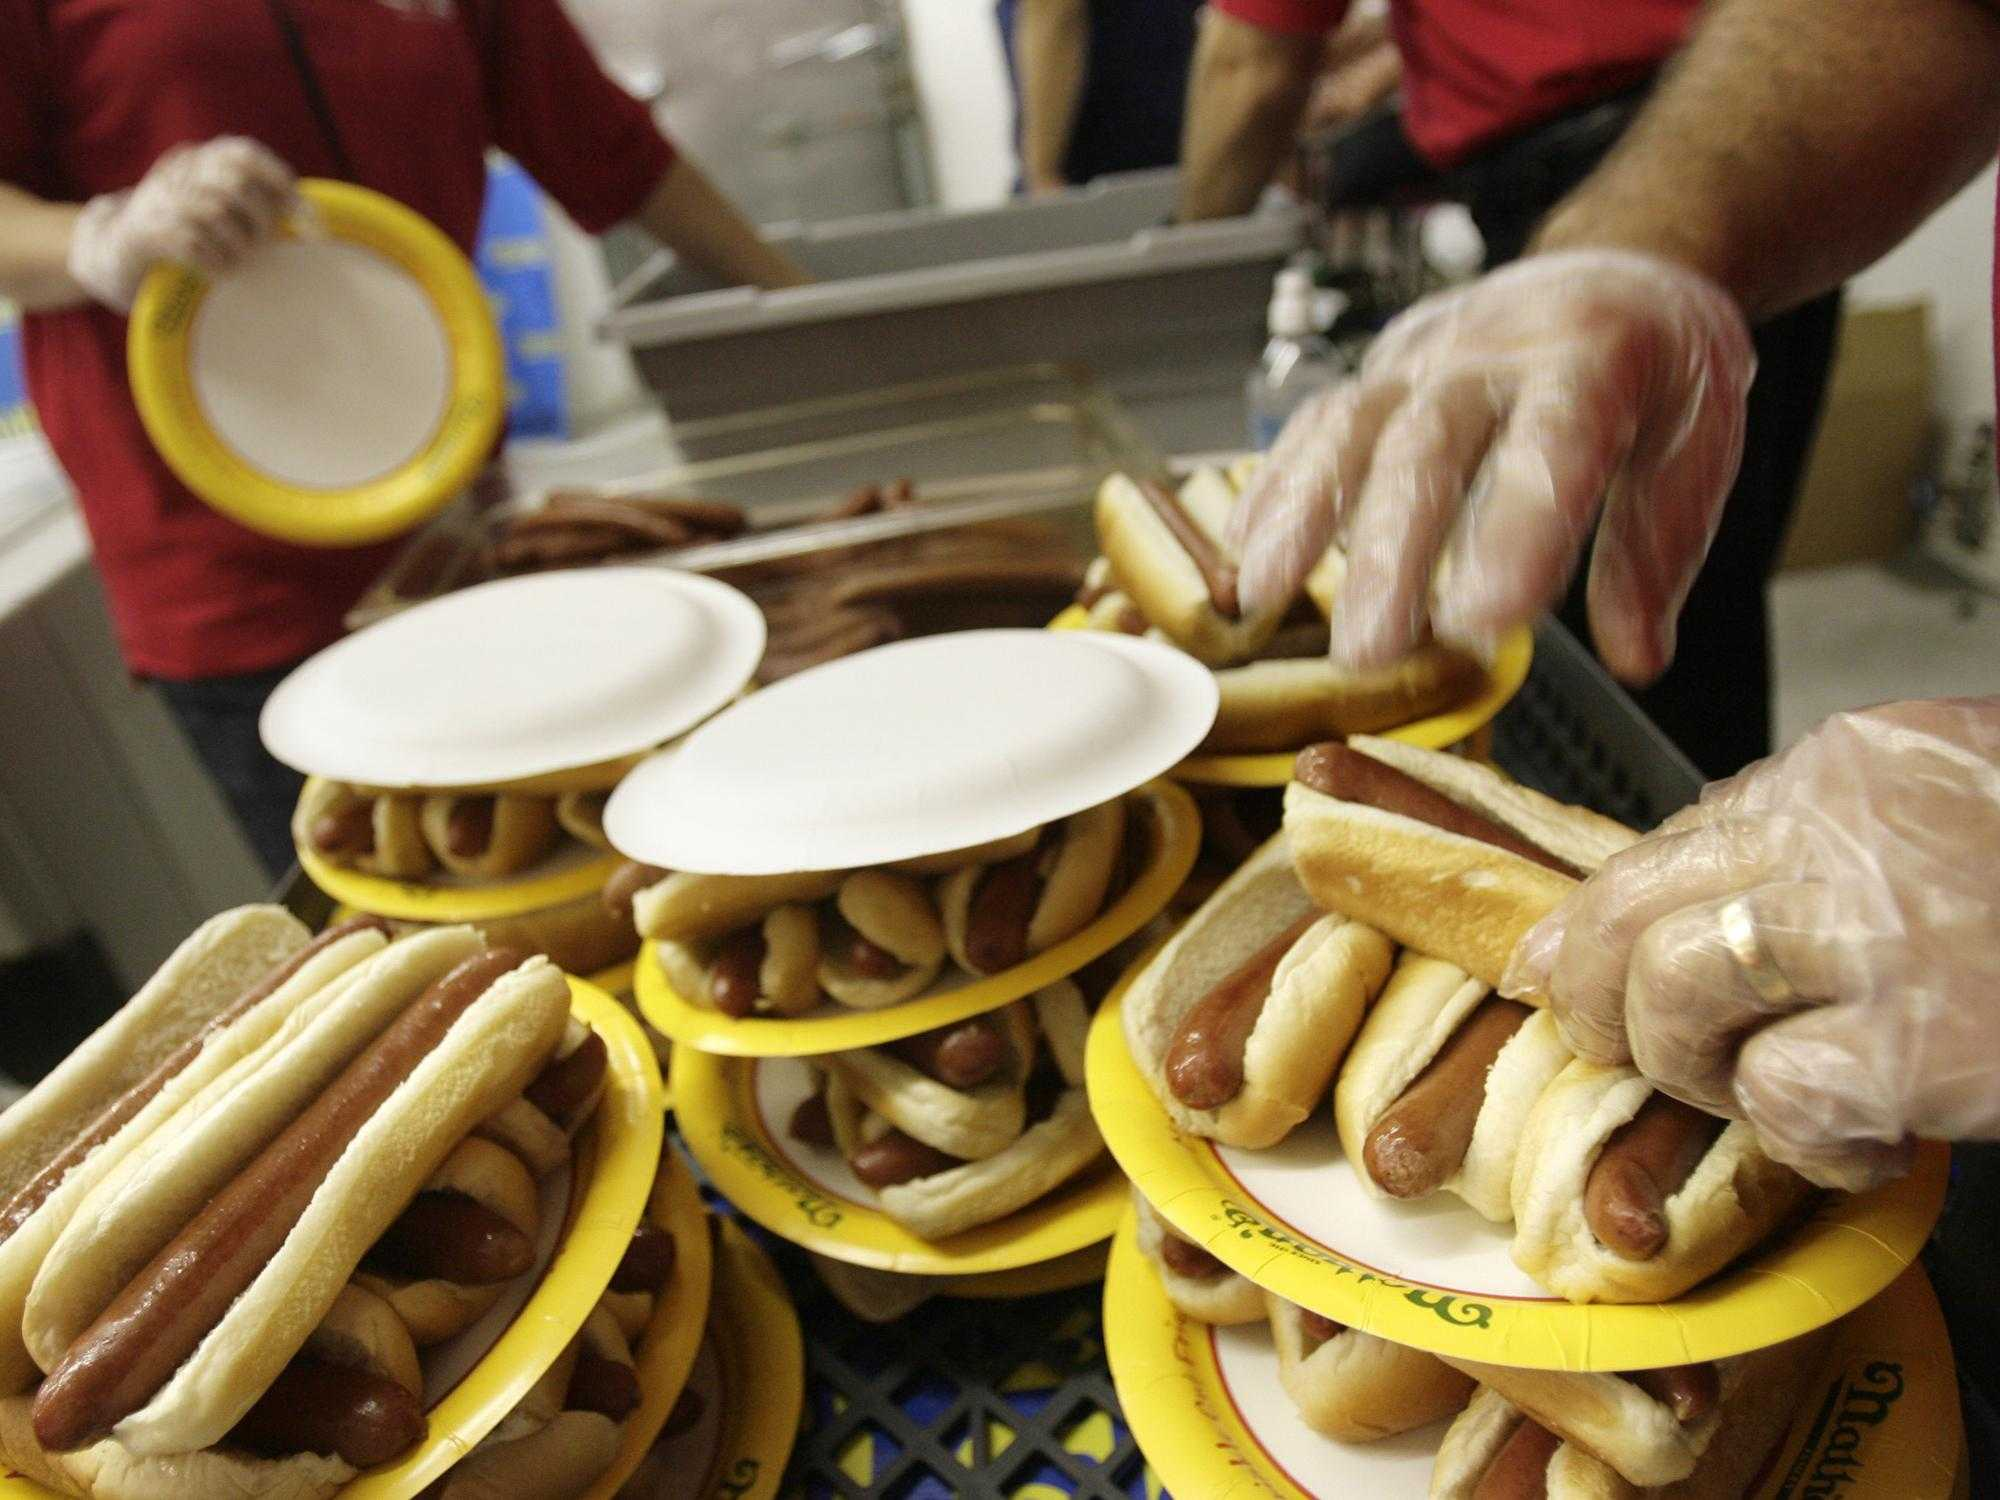 Woman wins famous hot dog eating contest